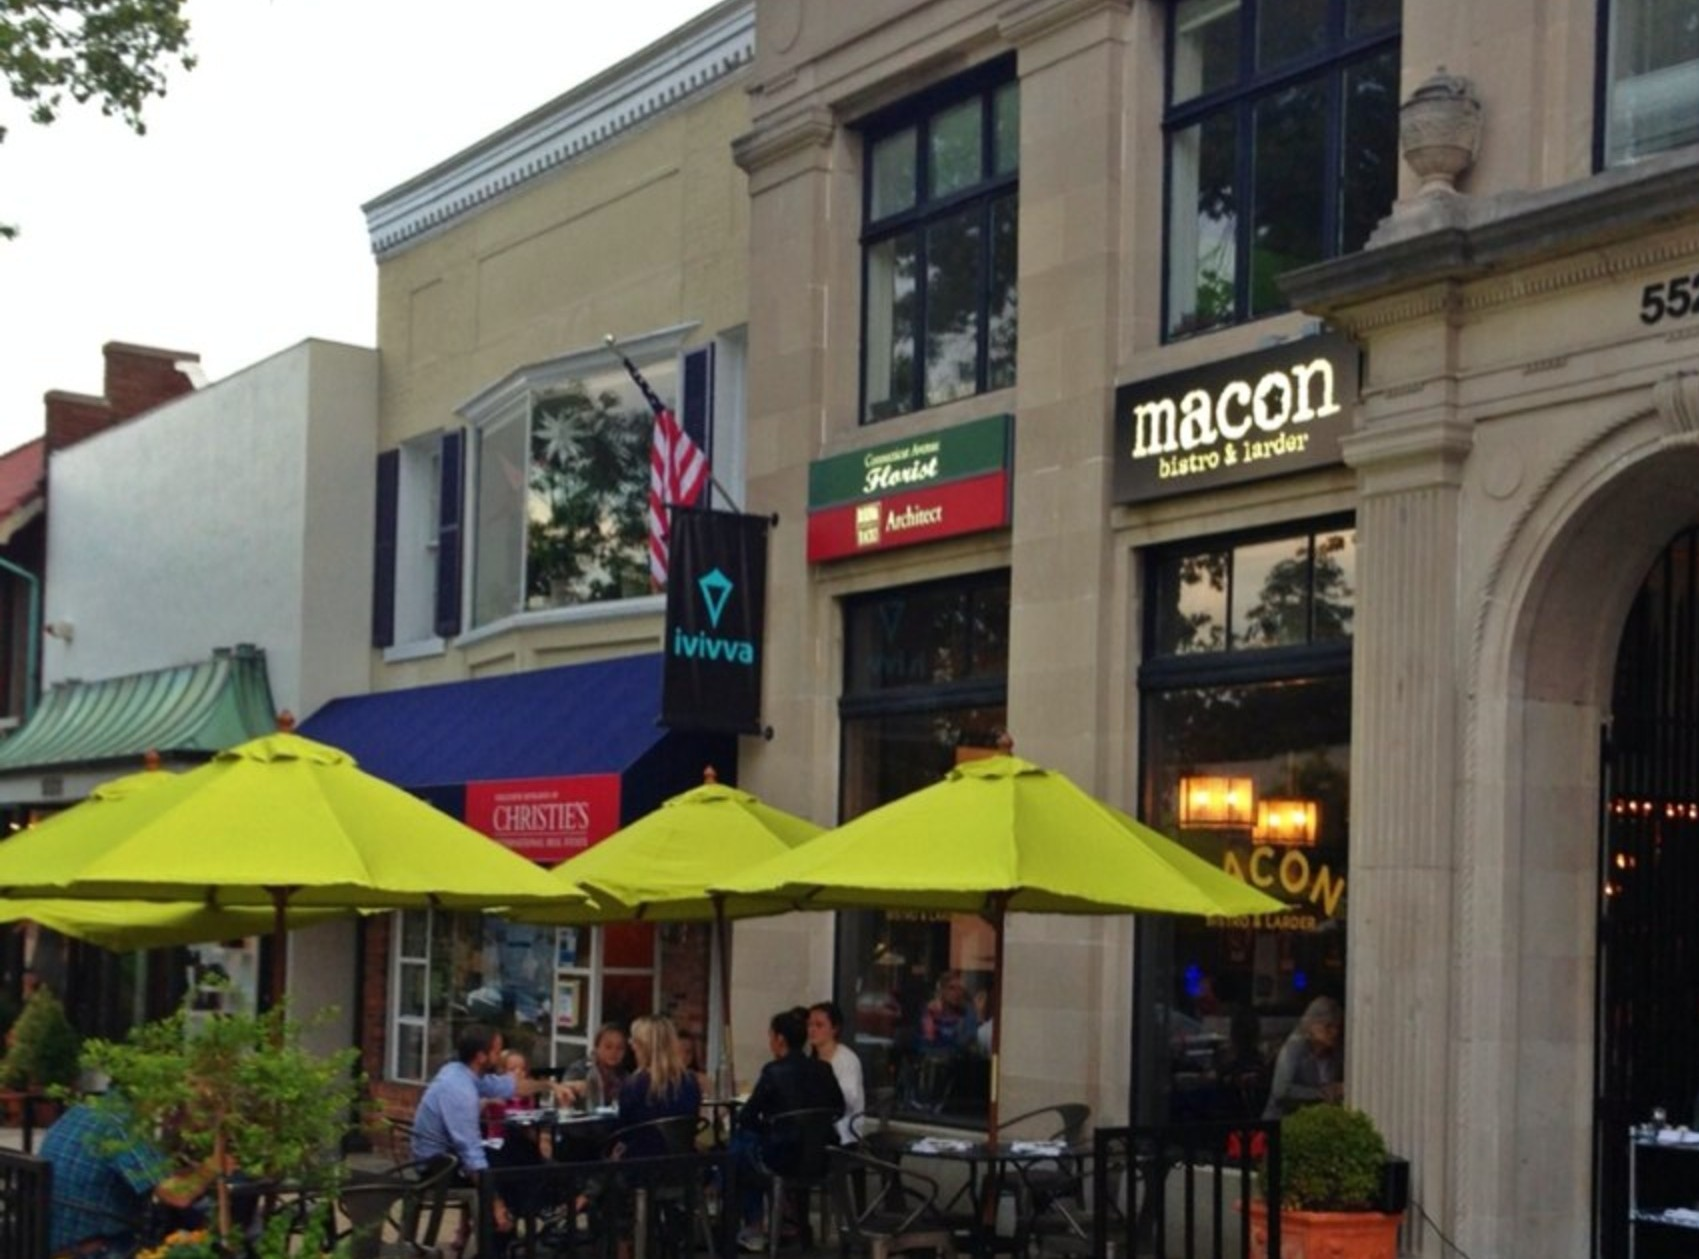 Macon Bistro & Larder will serve Sunday Supper the first Sunday of each month. (Photo: Urban Spoon)